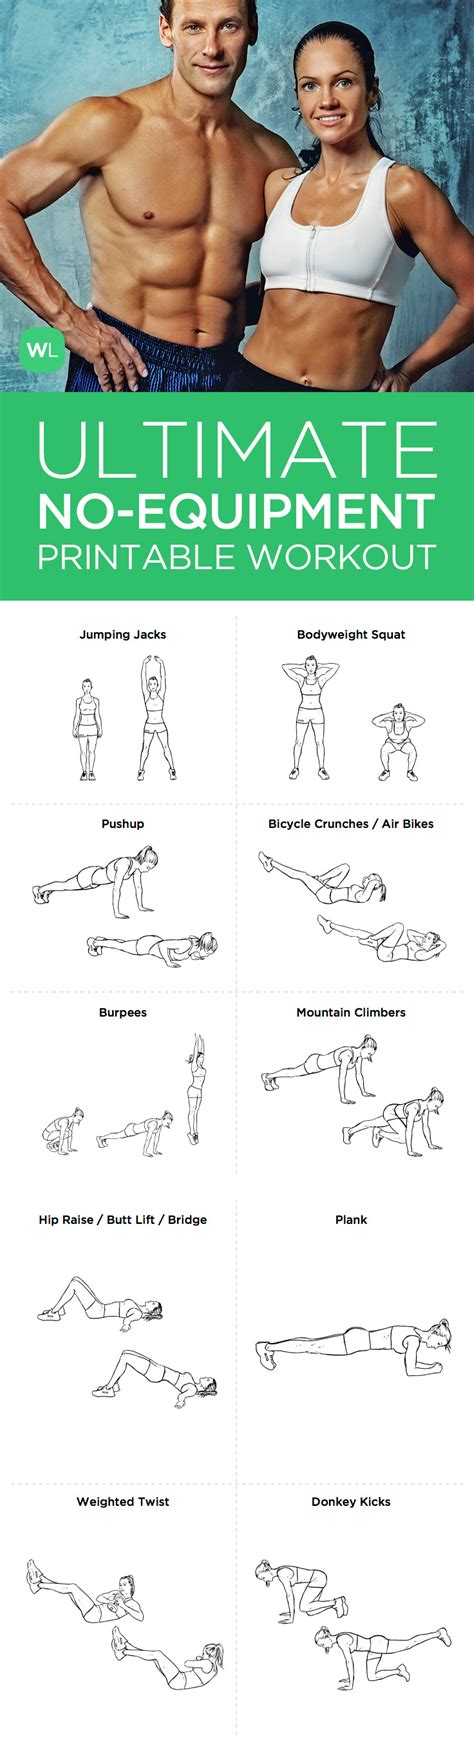 home workout images femalecelebrity